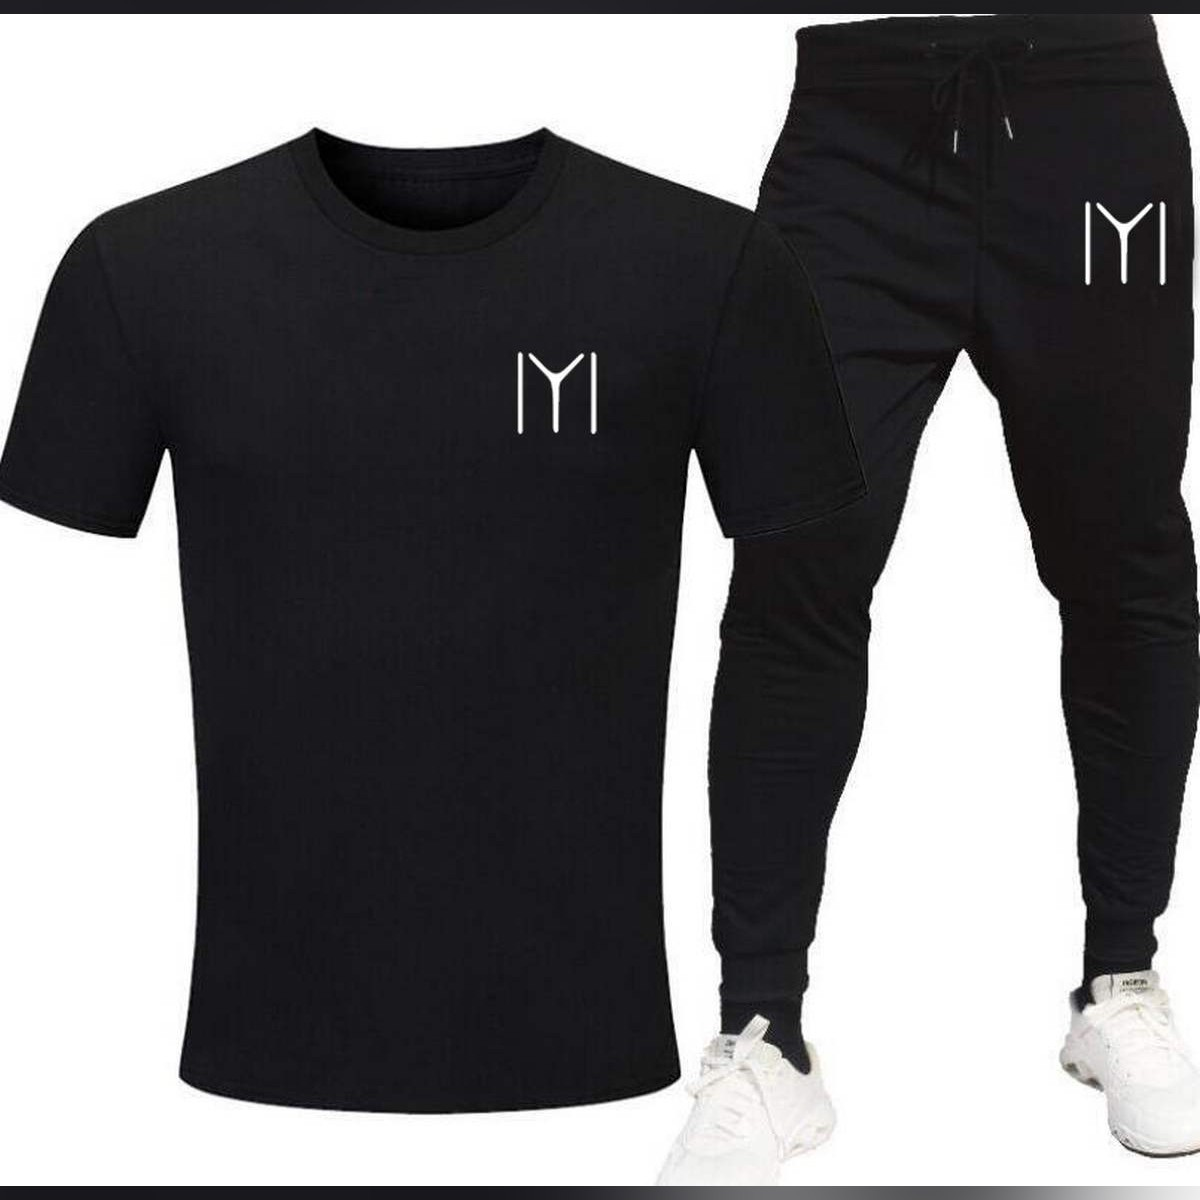 New Printed T Shirt And Trouser Cotton Half Sleeves Tees Summer Collection Top Quality For Men